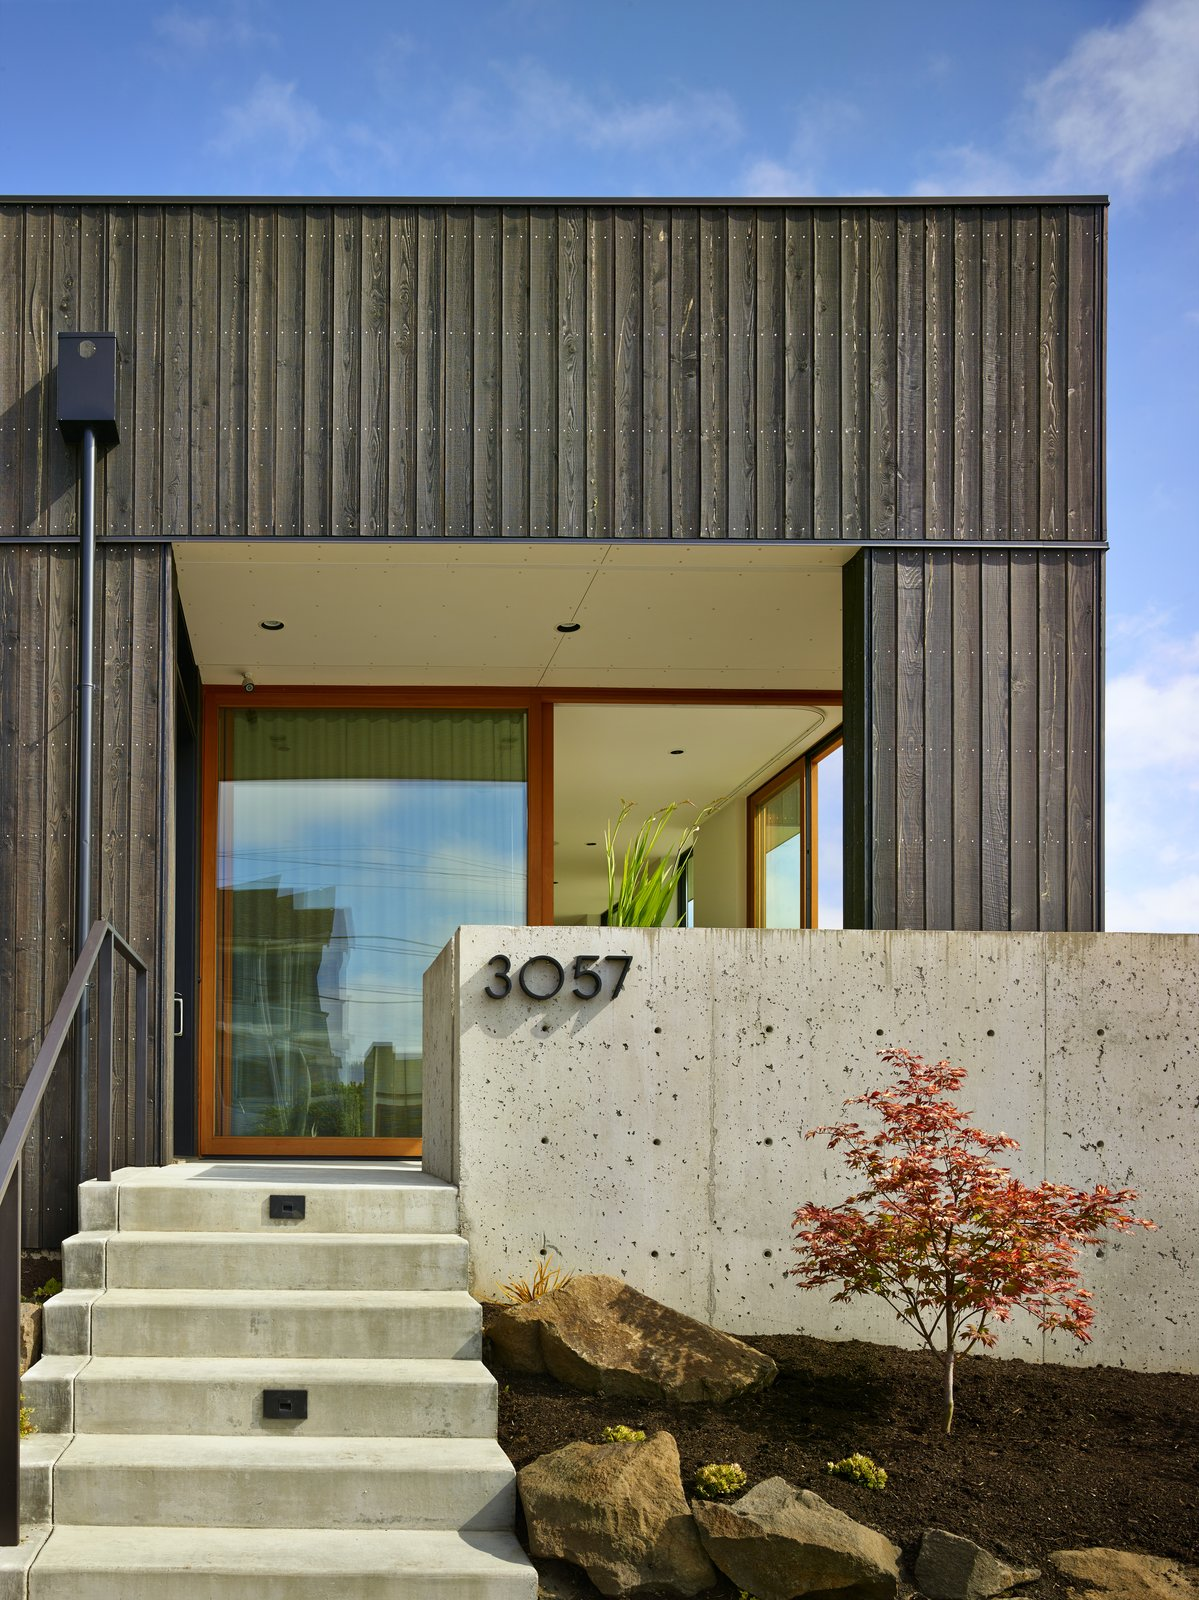 Tagged: Front Yard, Slope, Trees, Boulders, Hardscapes, Concrete Patio, Porch, Deck, Side Yard, Doors, Exterior, and Sliding Door Type. BLK_LAB by Patano Studio Architecure